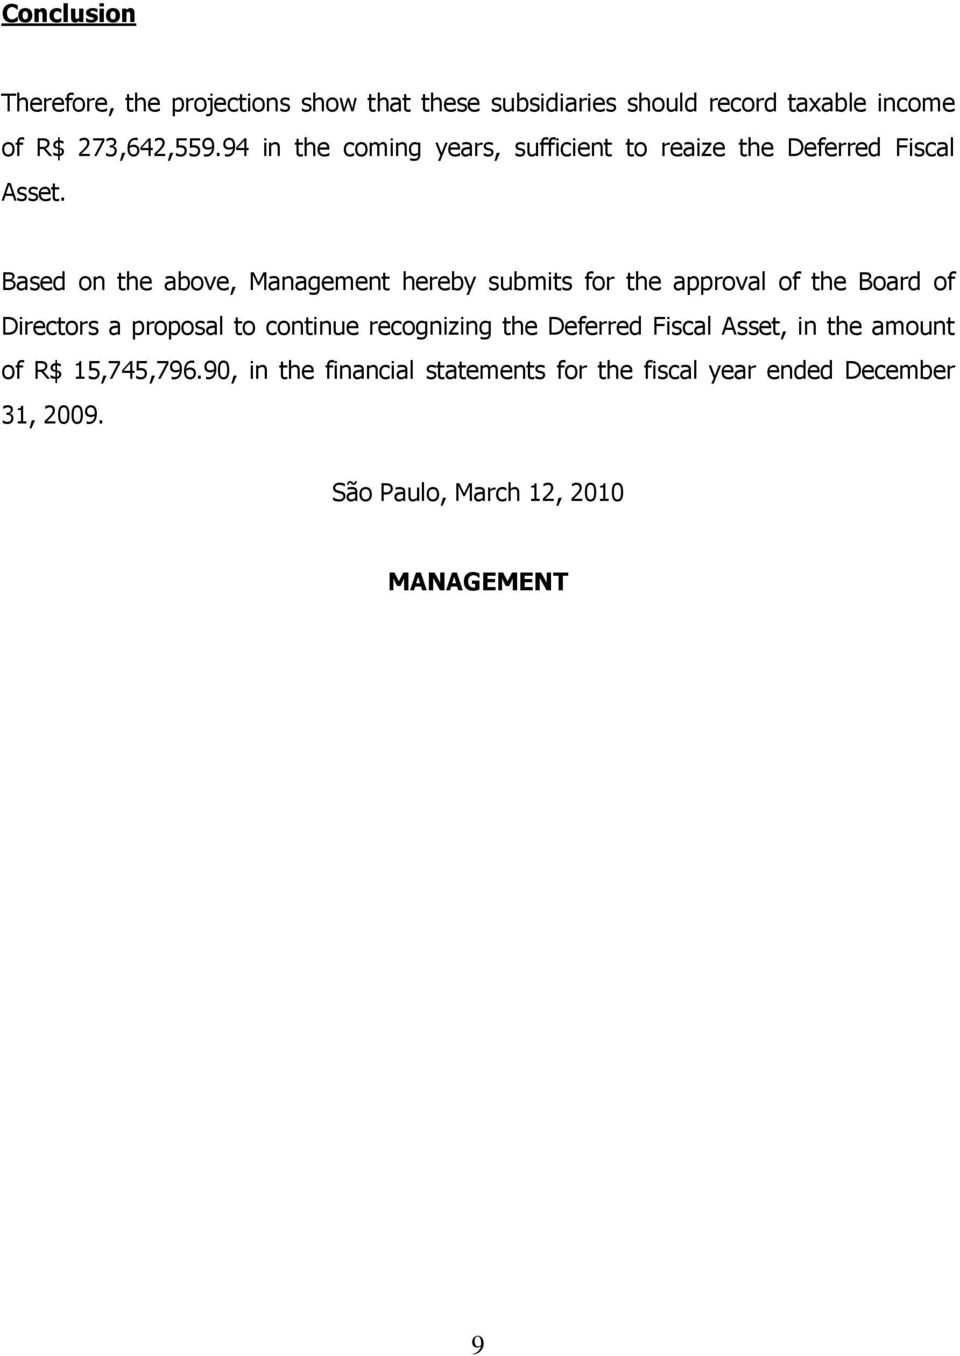 Based on the above, Management hereby submits for the approval of the Board of Directors a proposal to continue